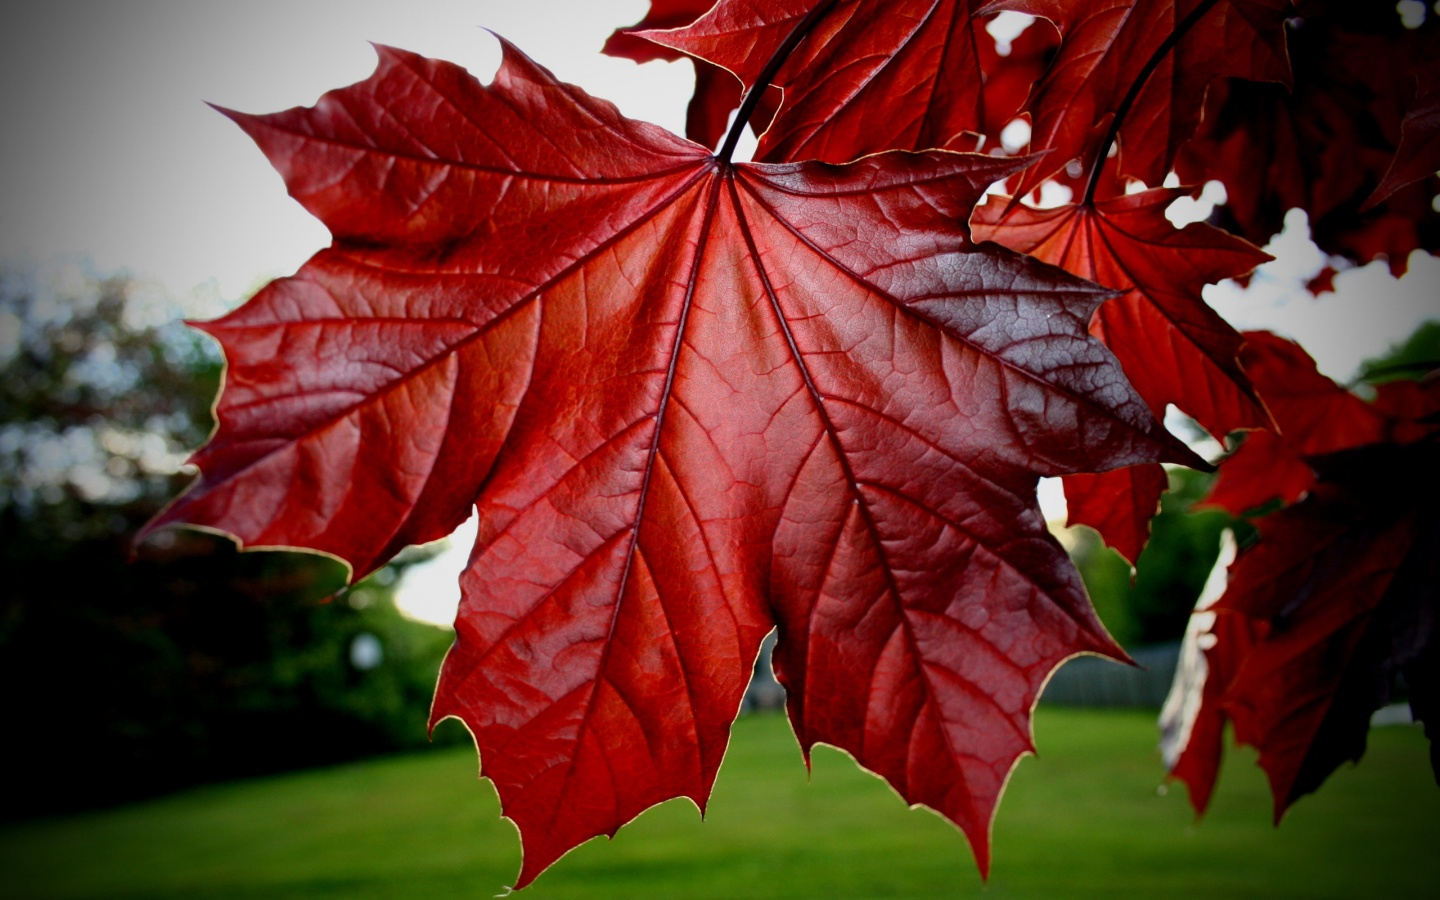 red leaves hd wallpaper - photo #18